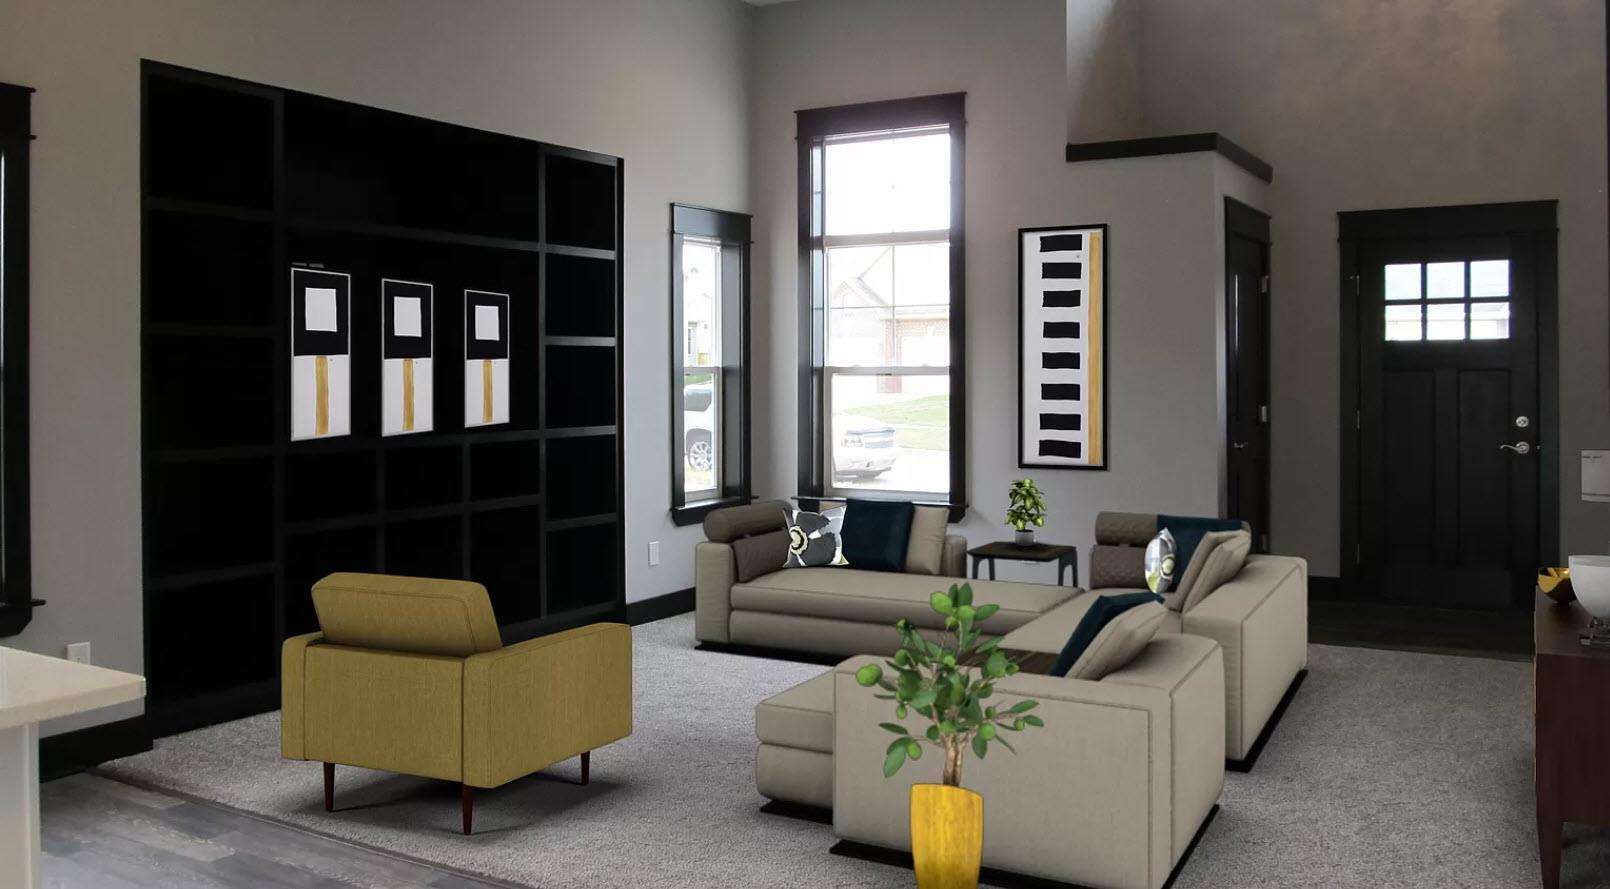 Living Area featured in the Stanford IV By Oak Ridge Homes in Lansing, MI